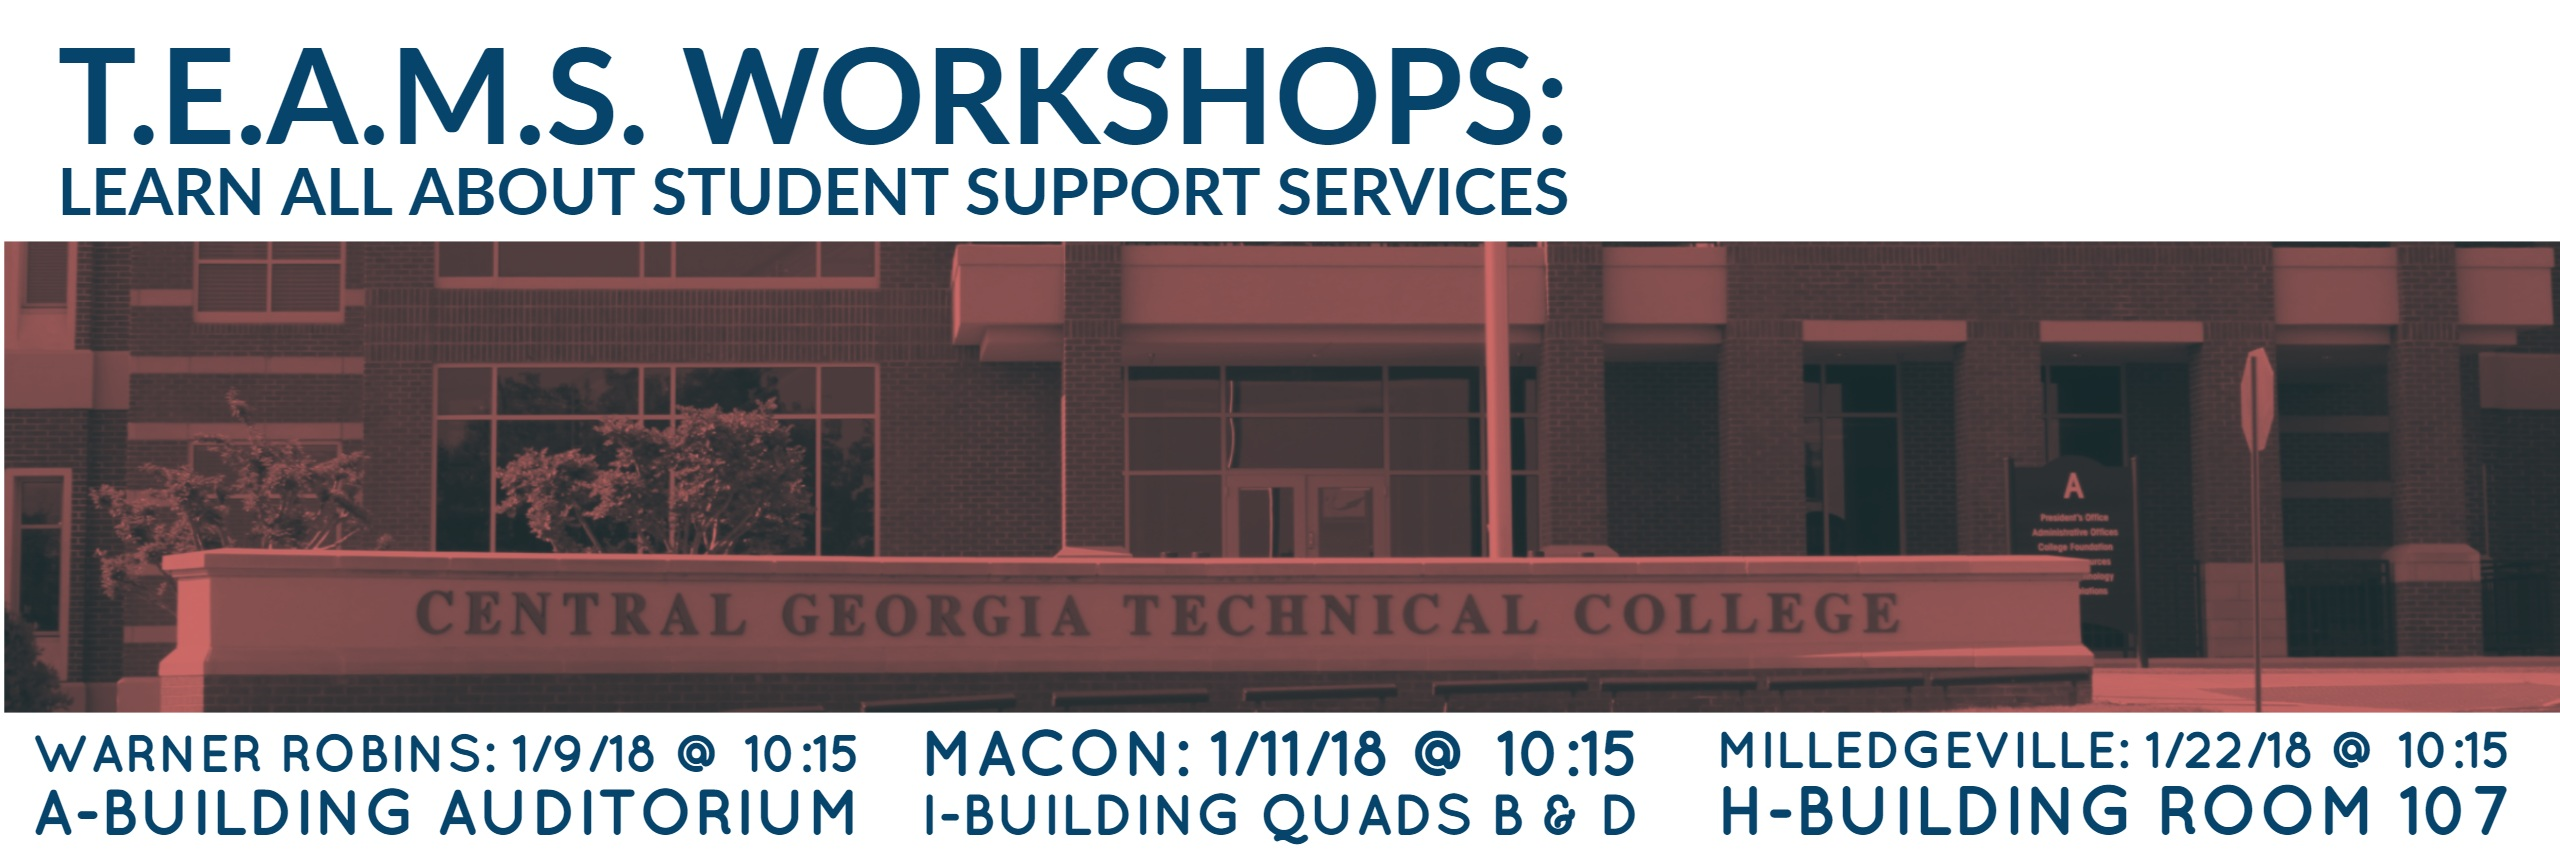 Upcoming TEAMS workshops will be held on all three CGTC campuses. For more information contact Kennethia Westbrook at kwestbrook@centralgatech.edu.